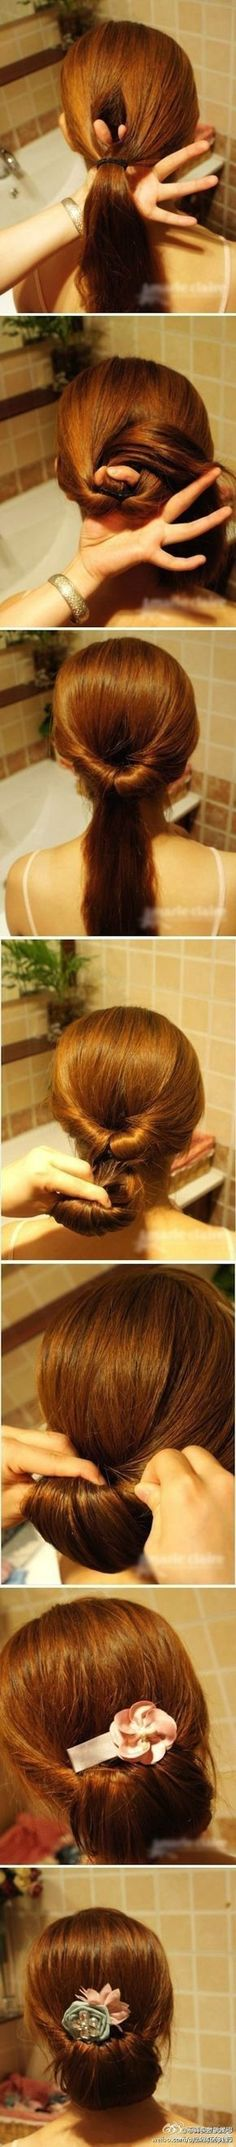 Easy updo step by step #hair #pictorial #rodete